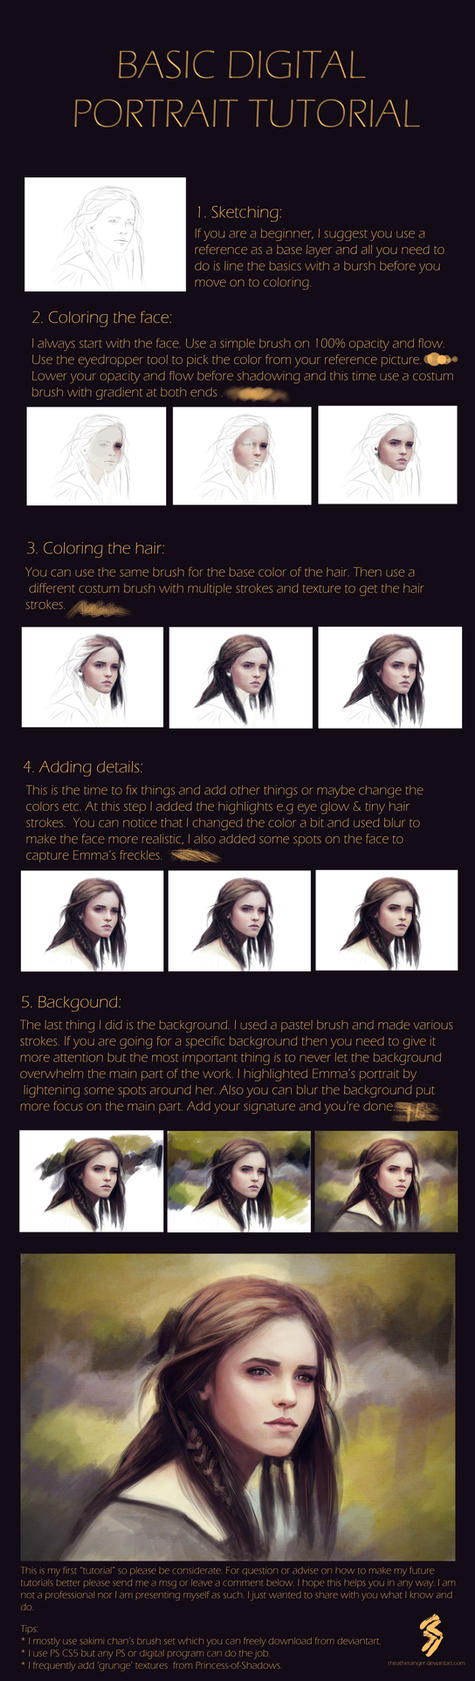 Digital Portrait Tutorial by Rheatheranger